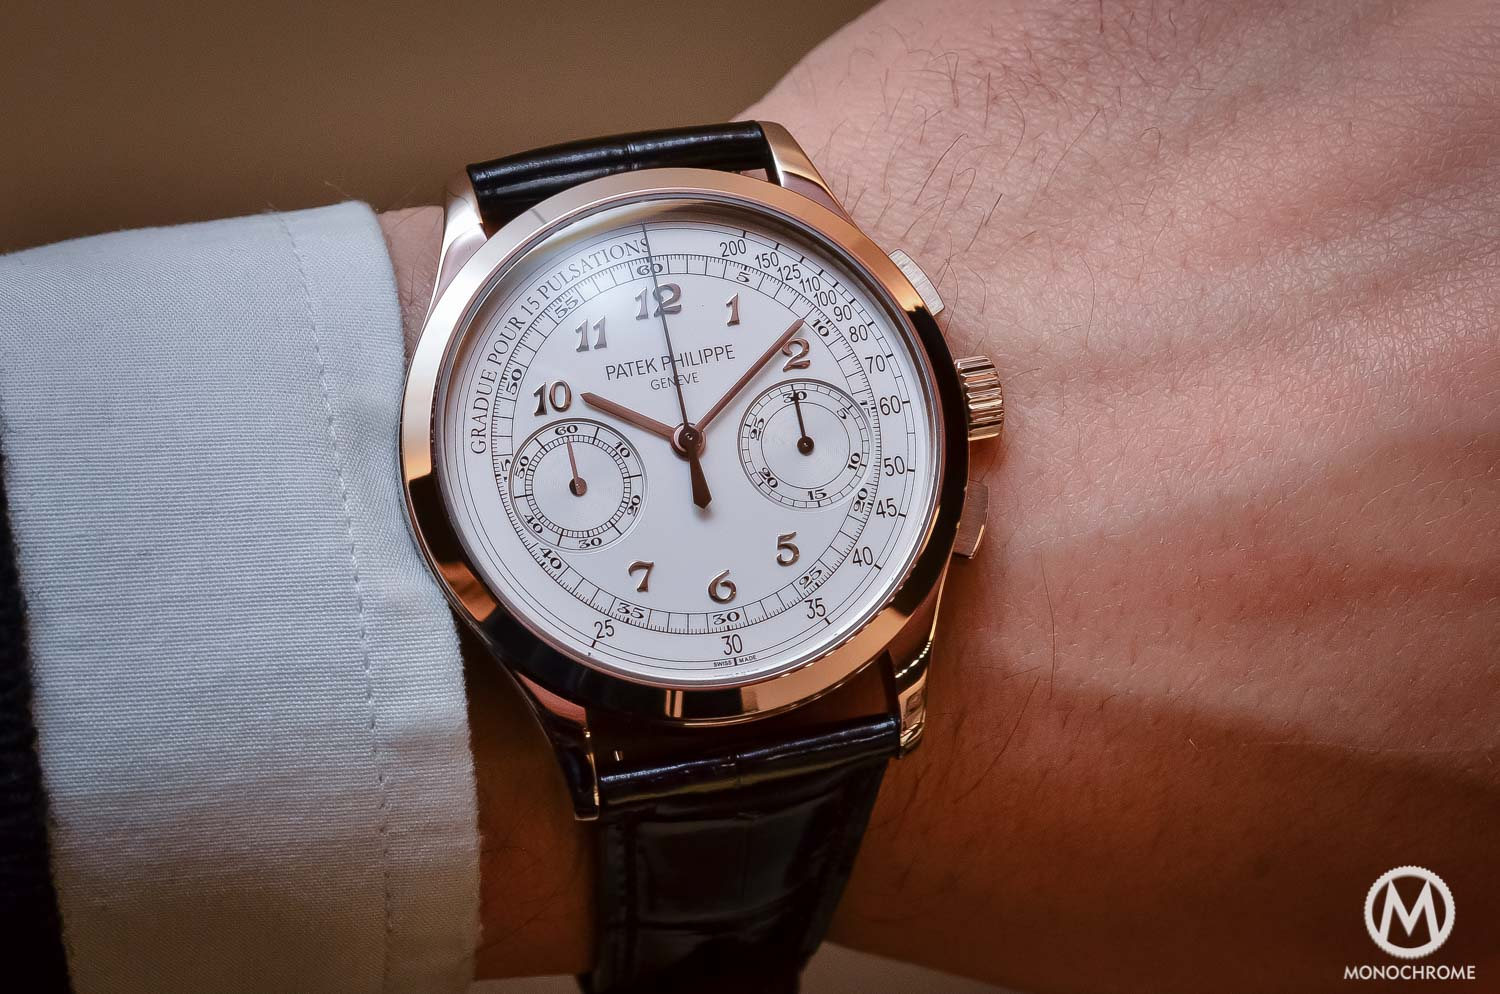 Why the patek philippe 5170g chronograph is such a cool watch review with live photos price for Patek philippe